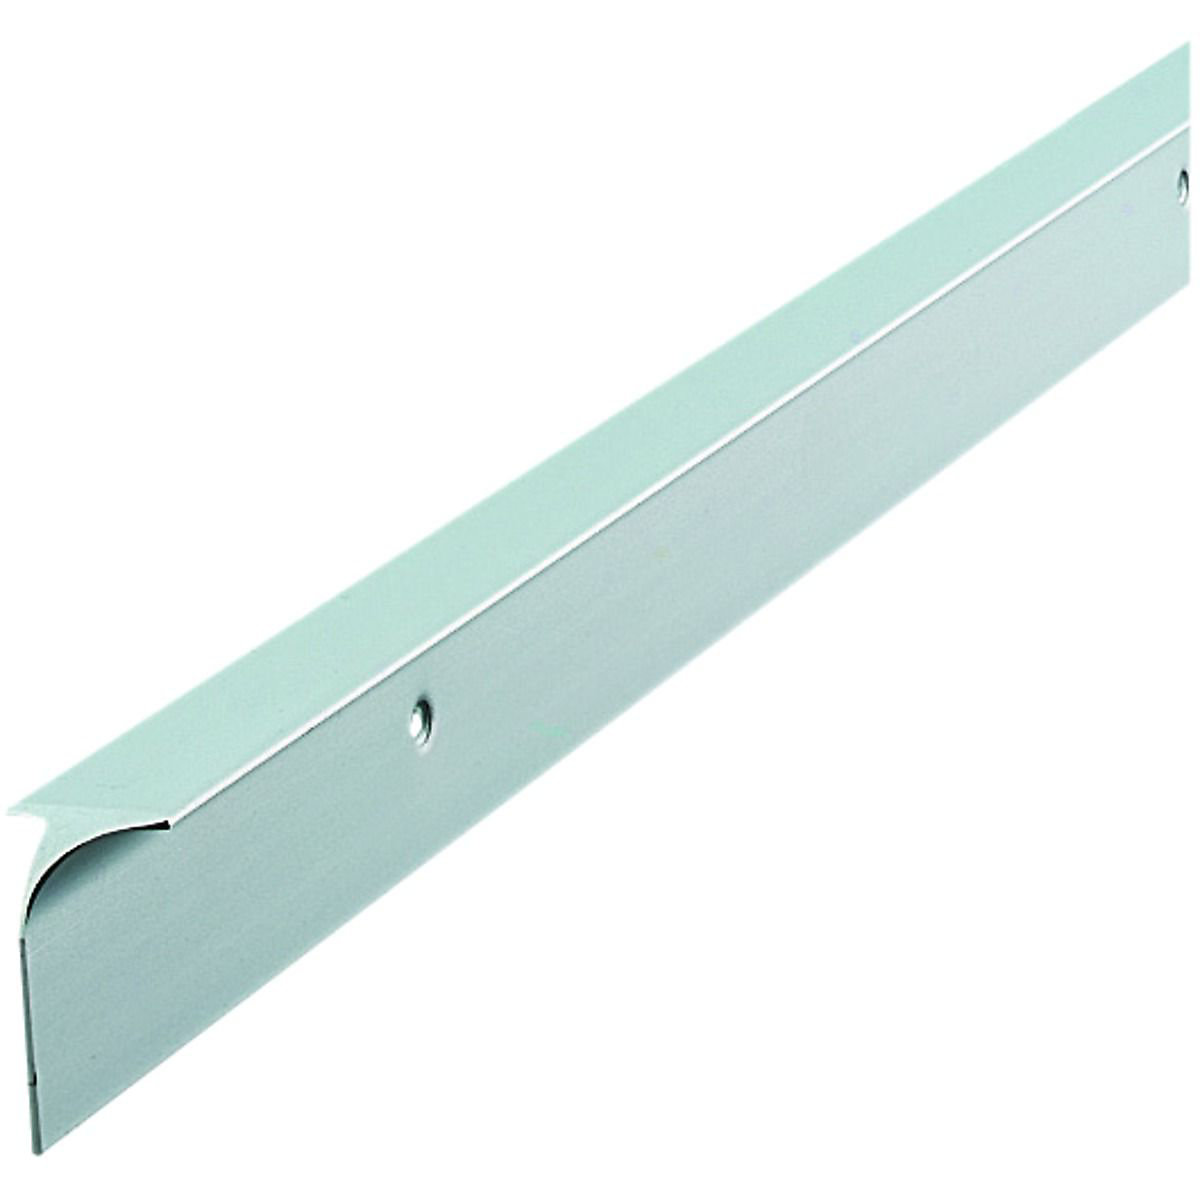 Unika 40mm Silver Worktop Aluminium Corner Joint 630mm/6mm Radius ...